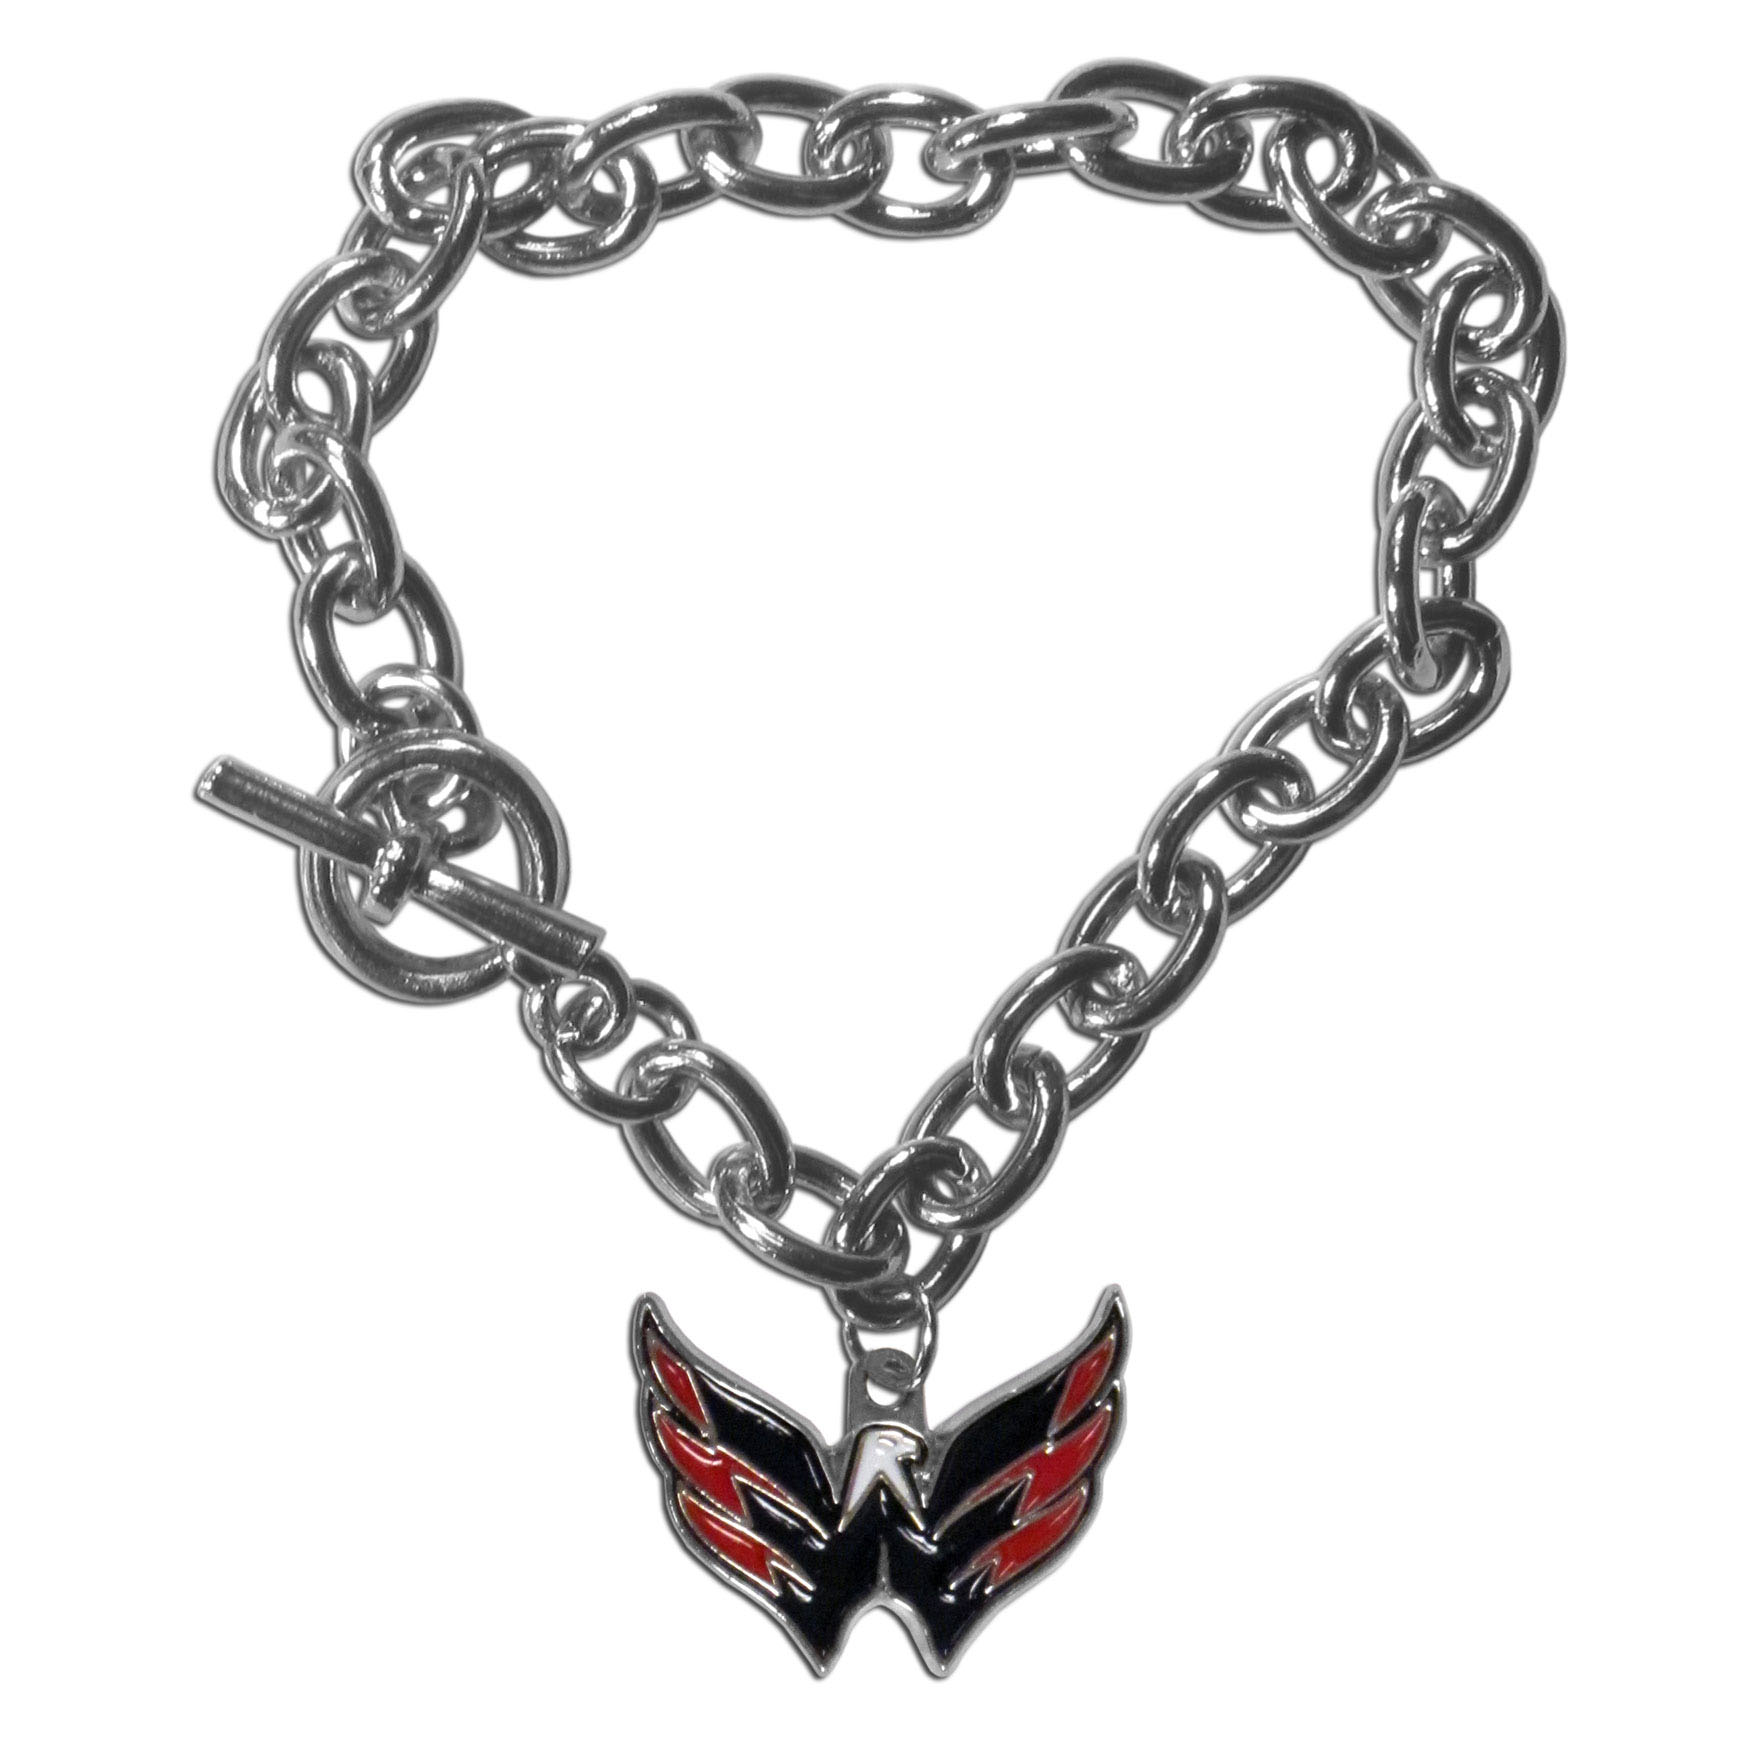 Washington Capitals® Charm Chain Bracelet - Our classic single charm bracelet is a great way to show off your team pride! The 7.5 inch large link chain features a high polish Washington Capitals® charm and features a toggle clasp which makes it super easy to take on and off.